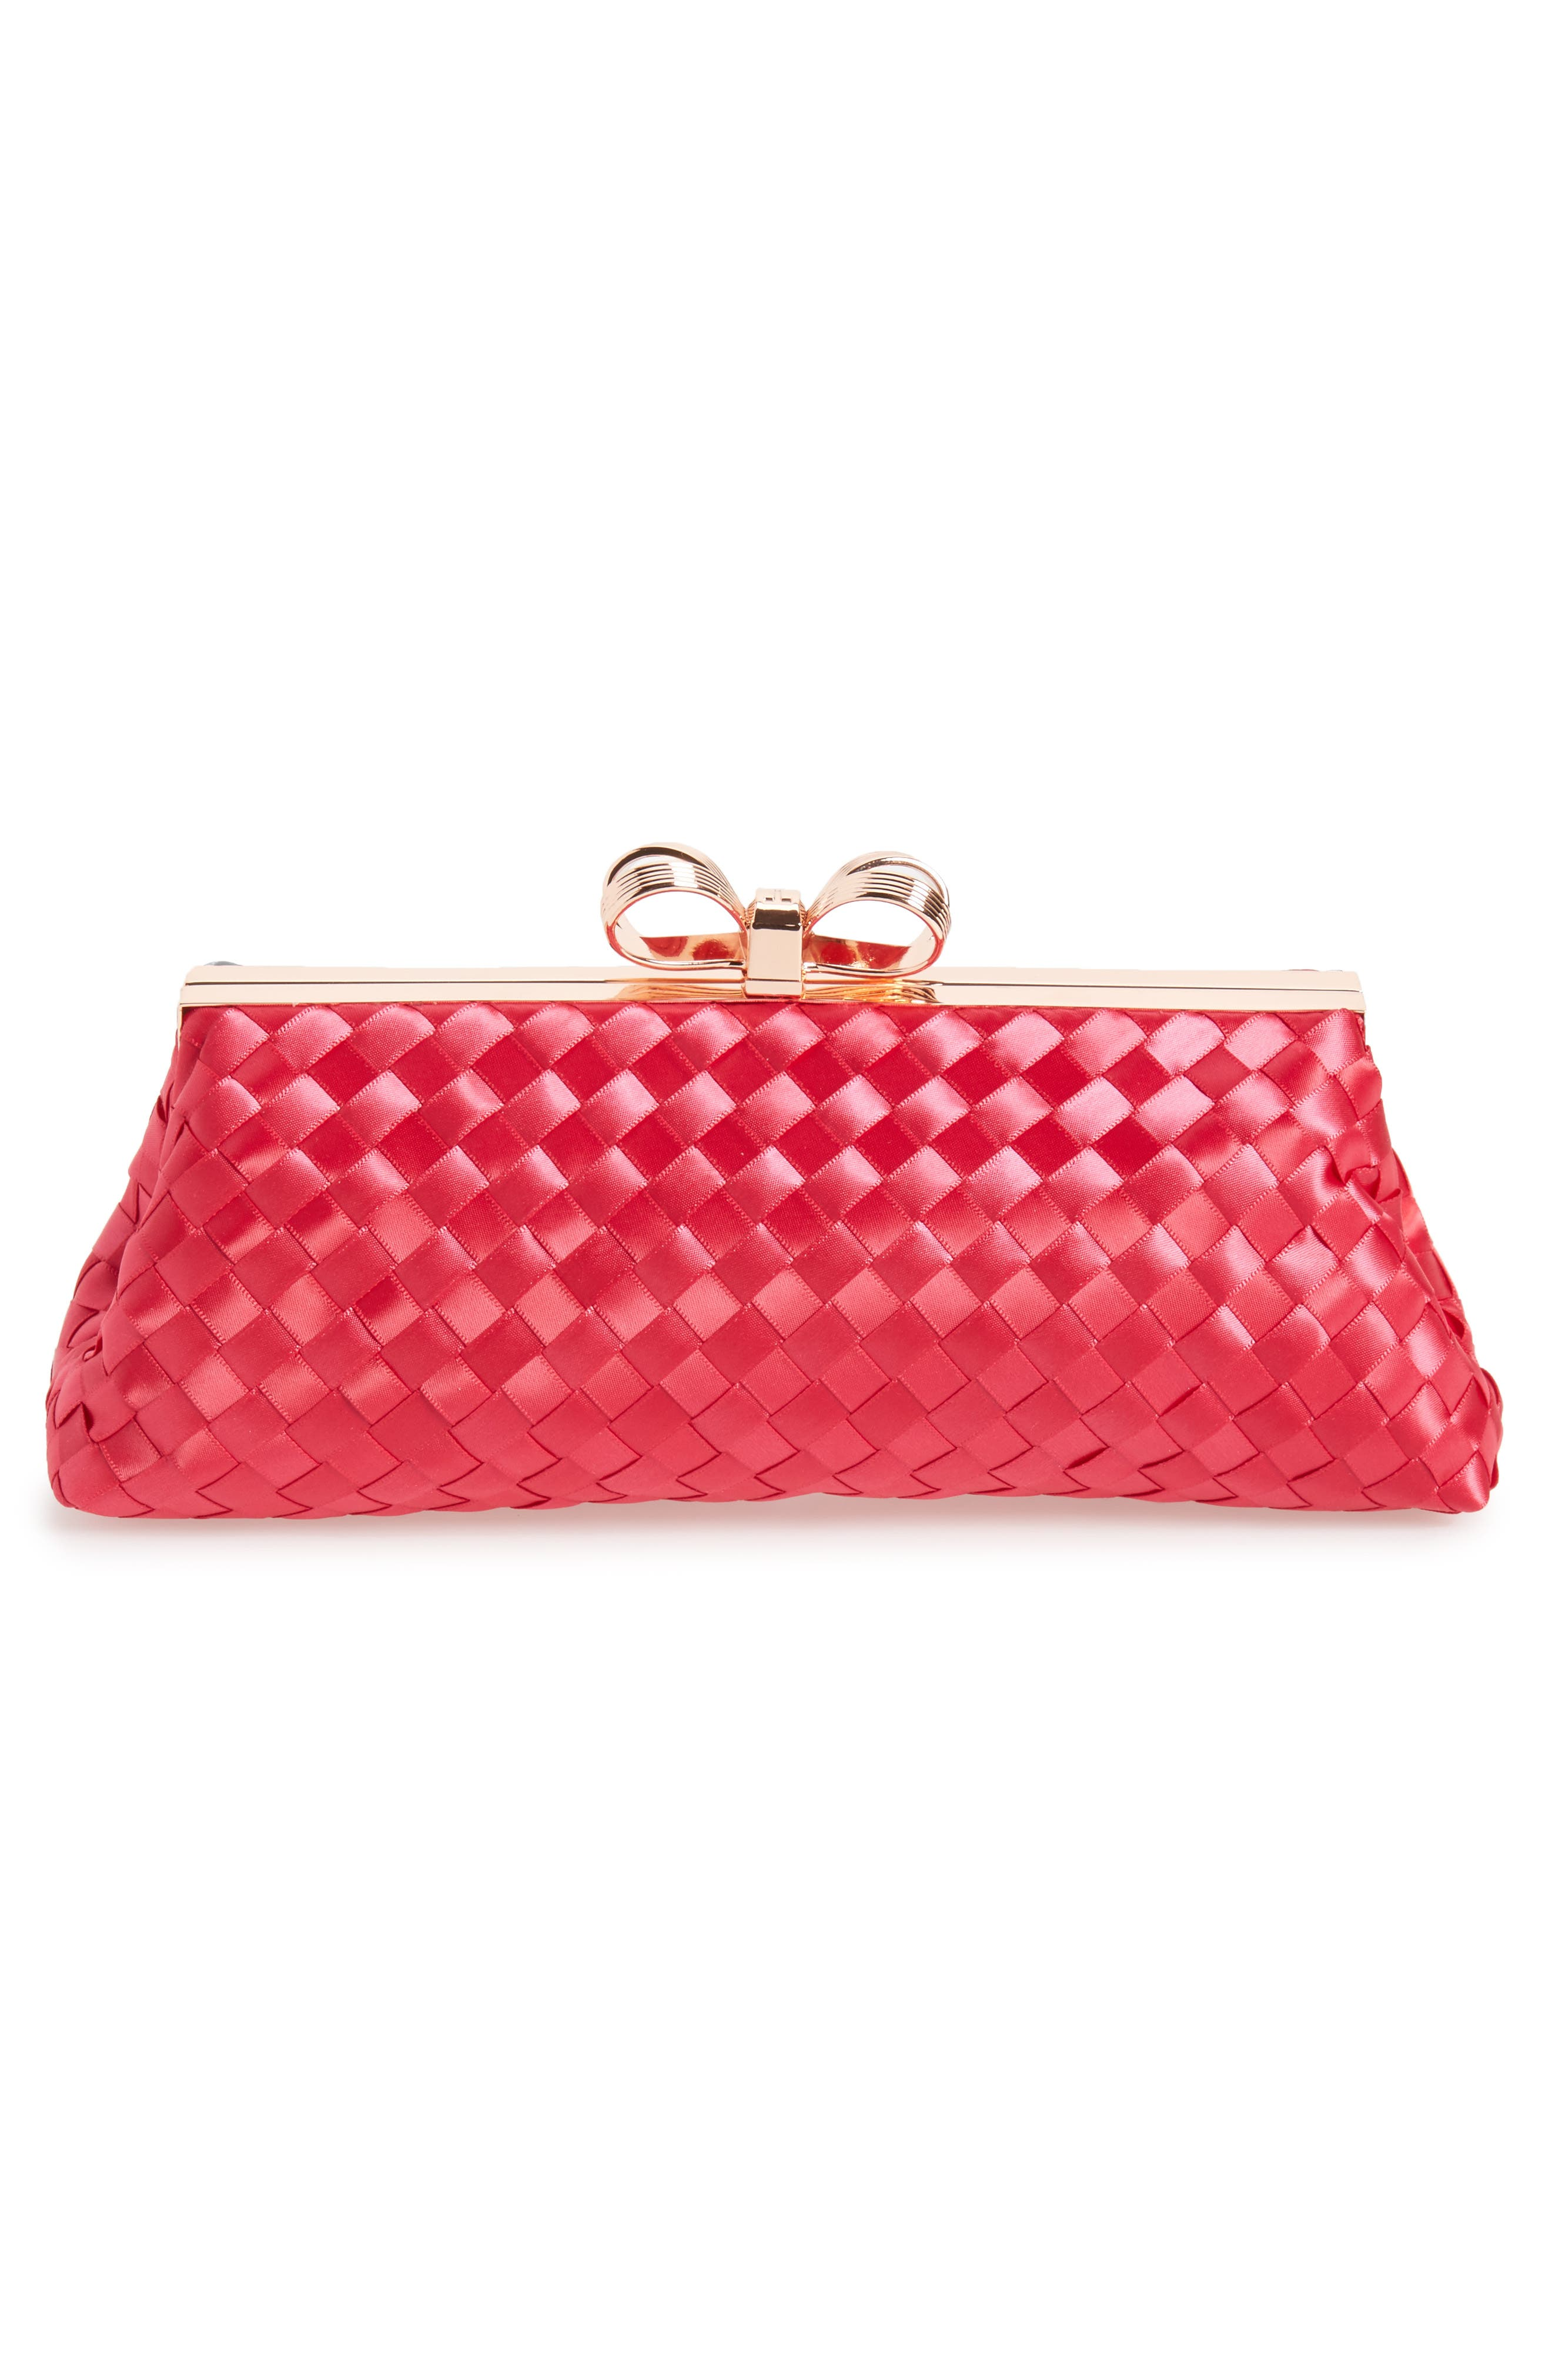 Alaina Woven Frame Clutch,                             Alternate thumbnail 4, color,                             Deep Pink